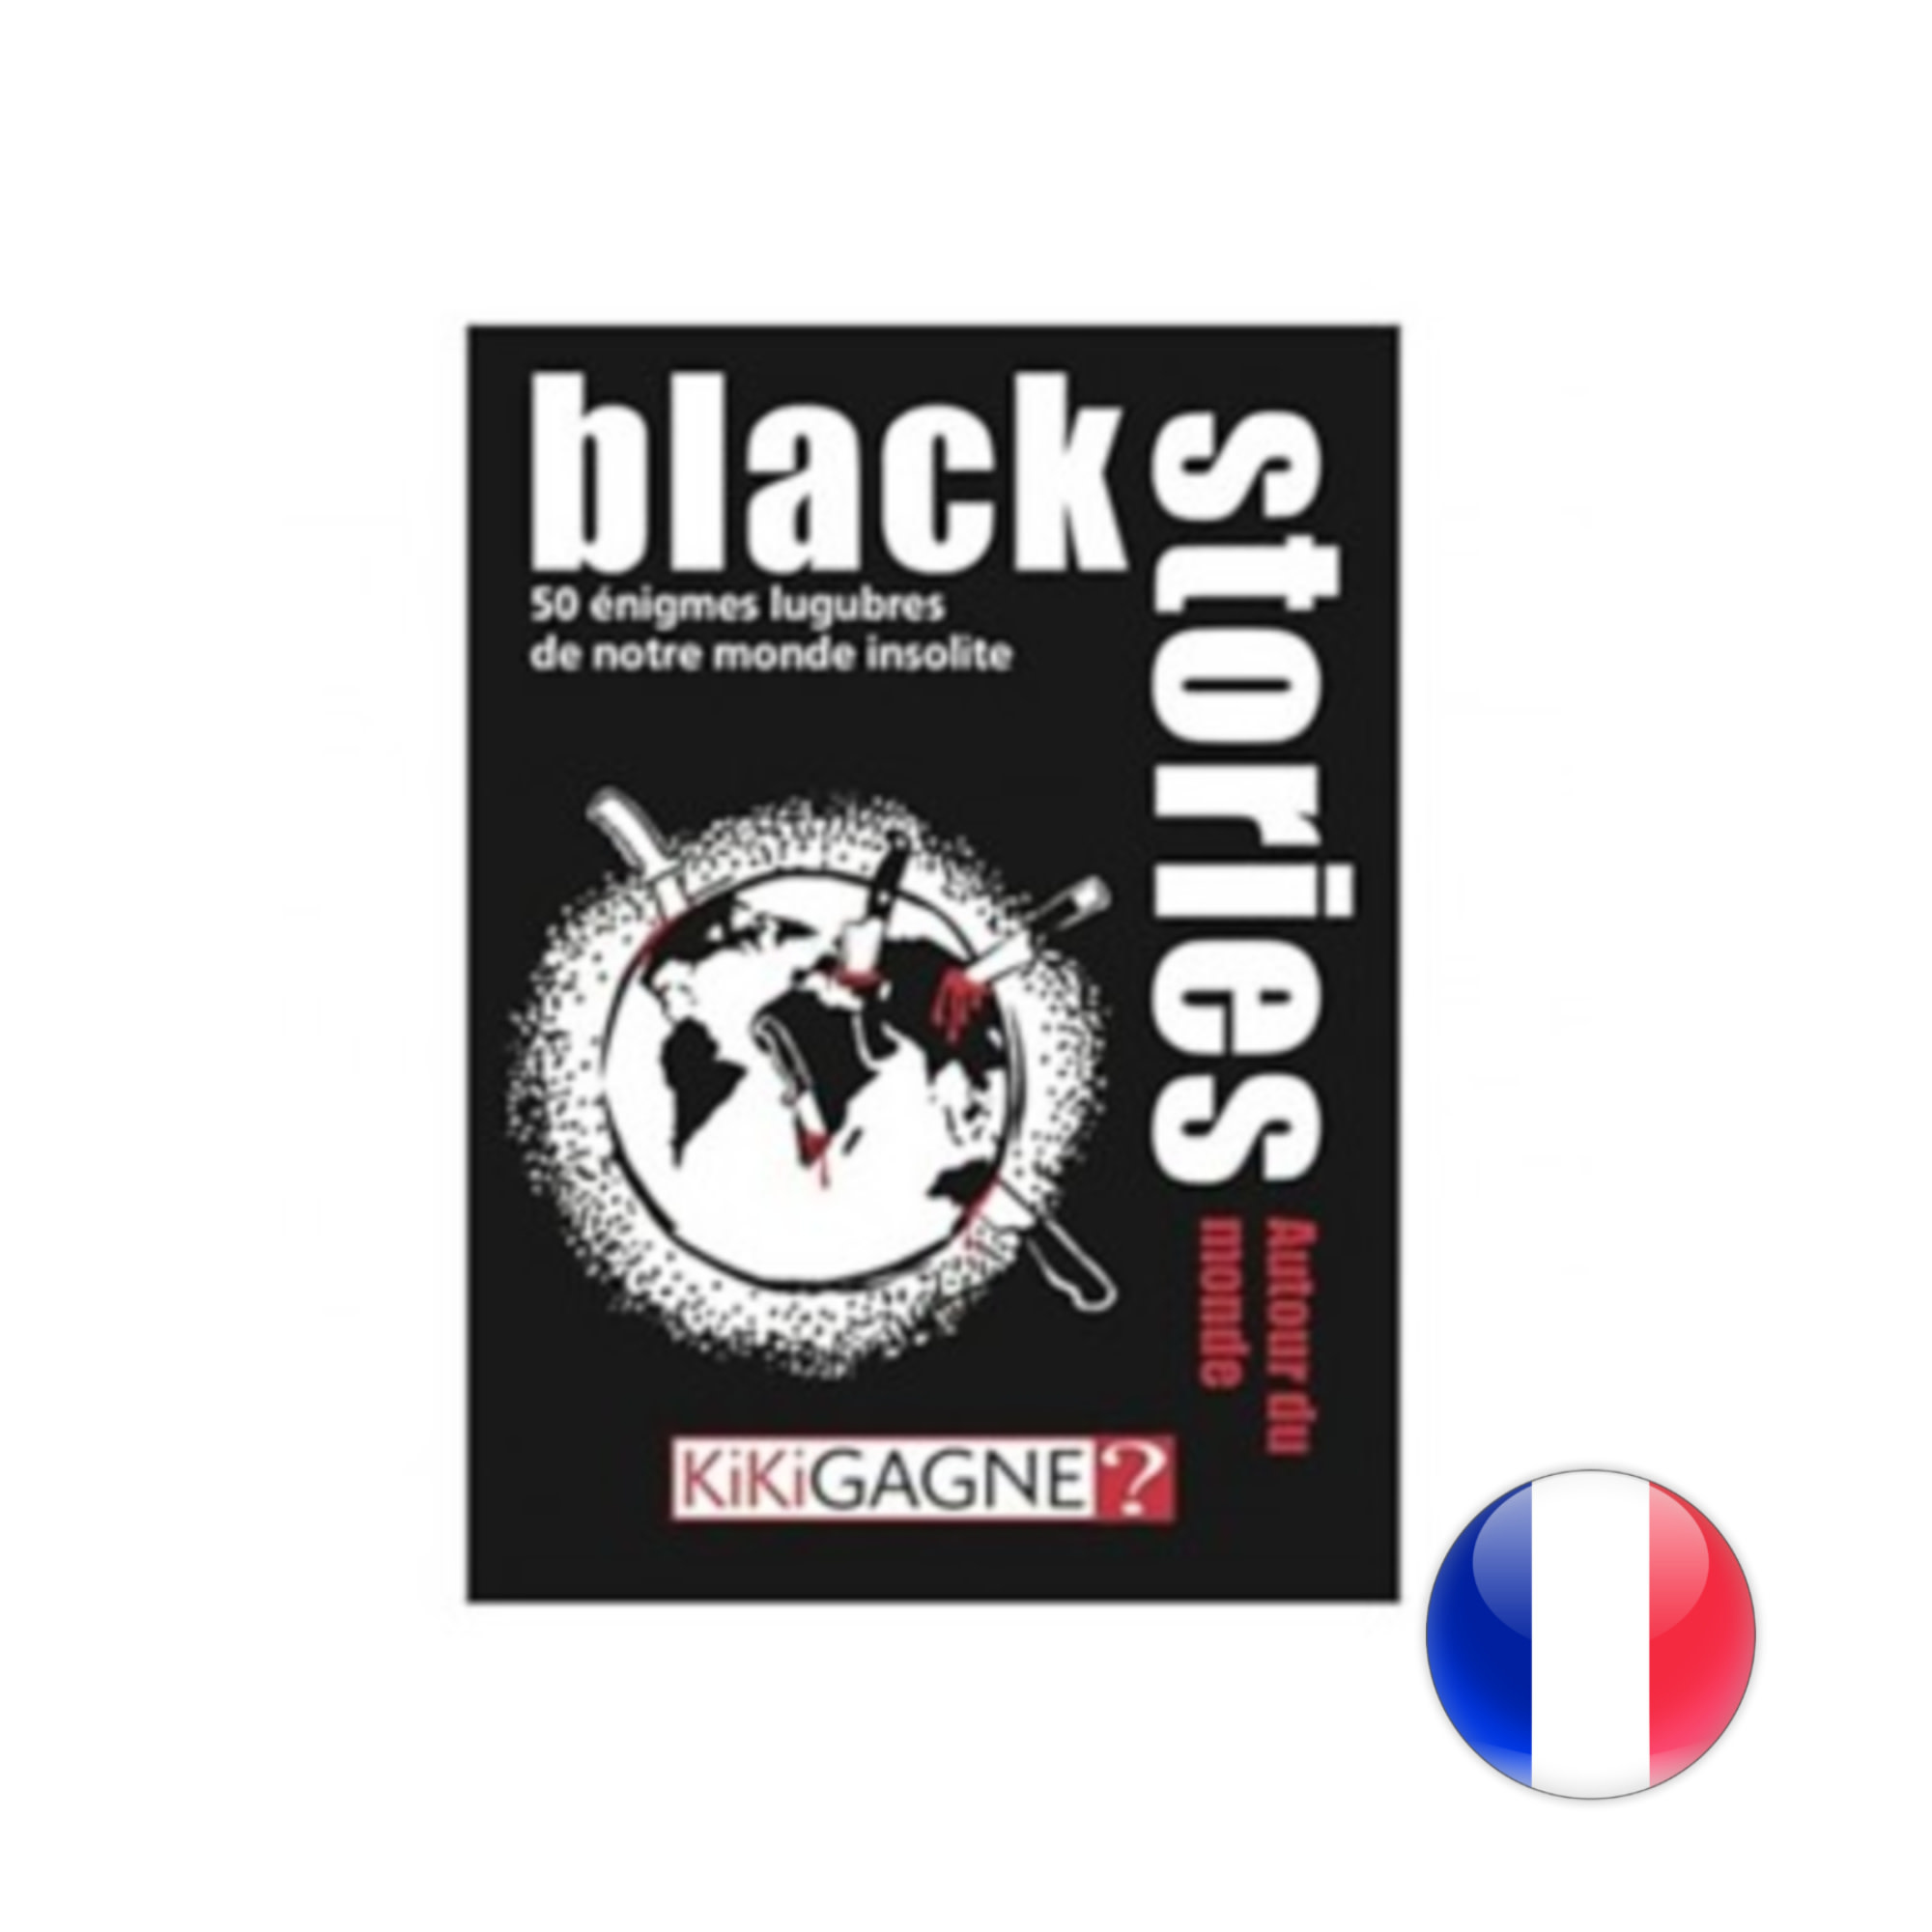 Kikigagne? Black Stories: Autour du monde